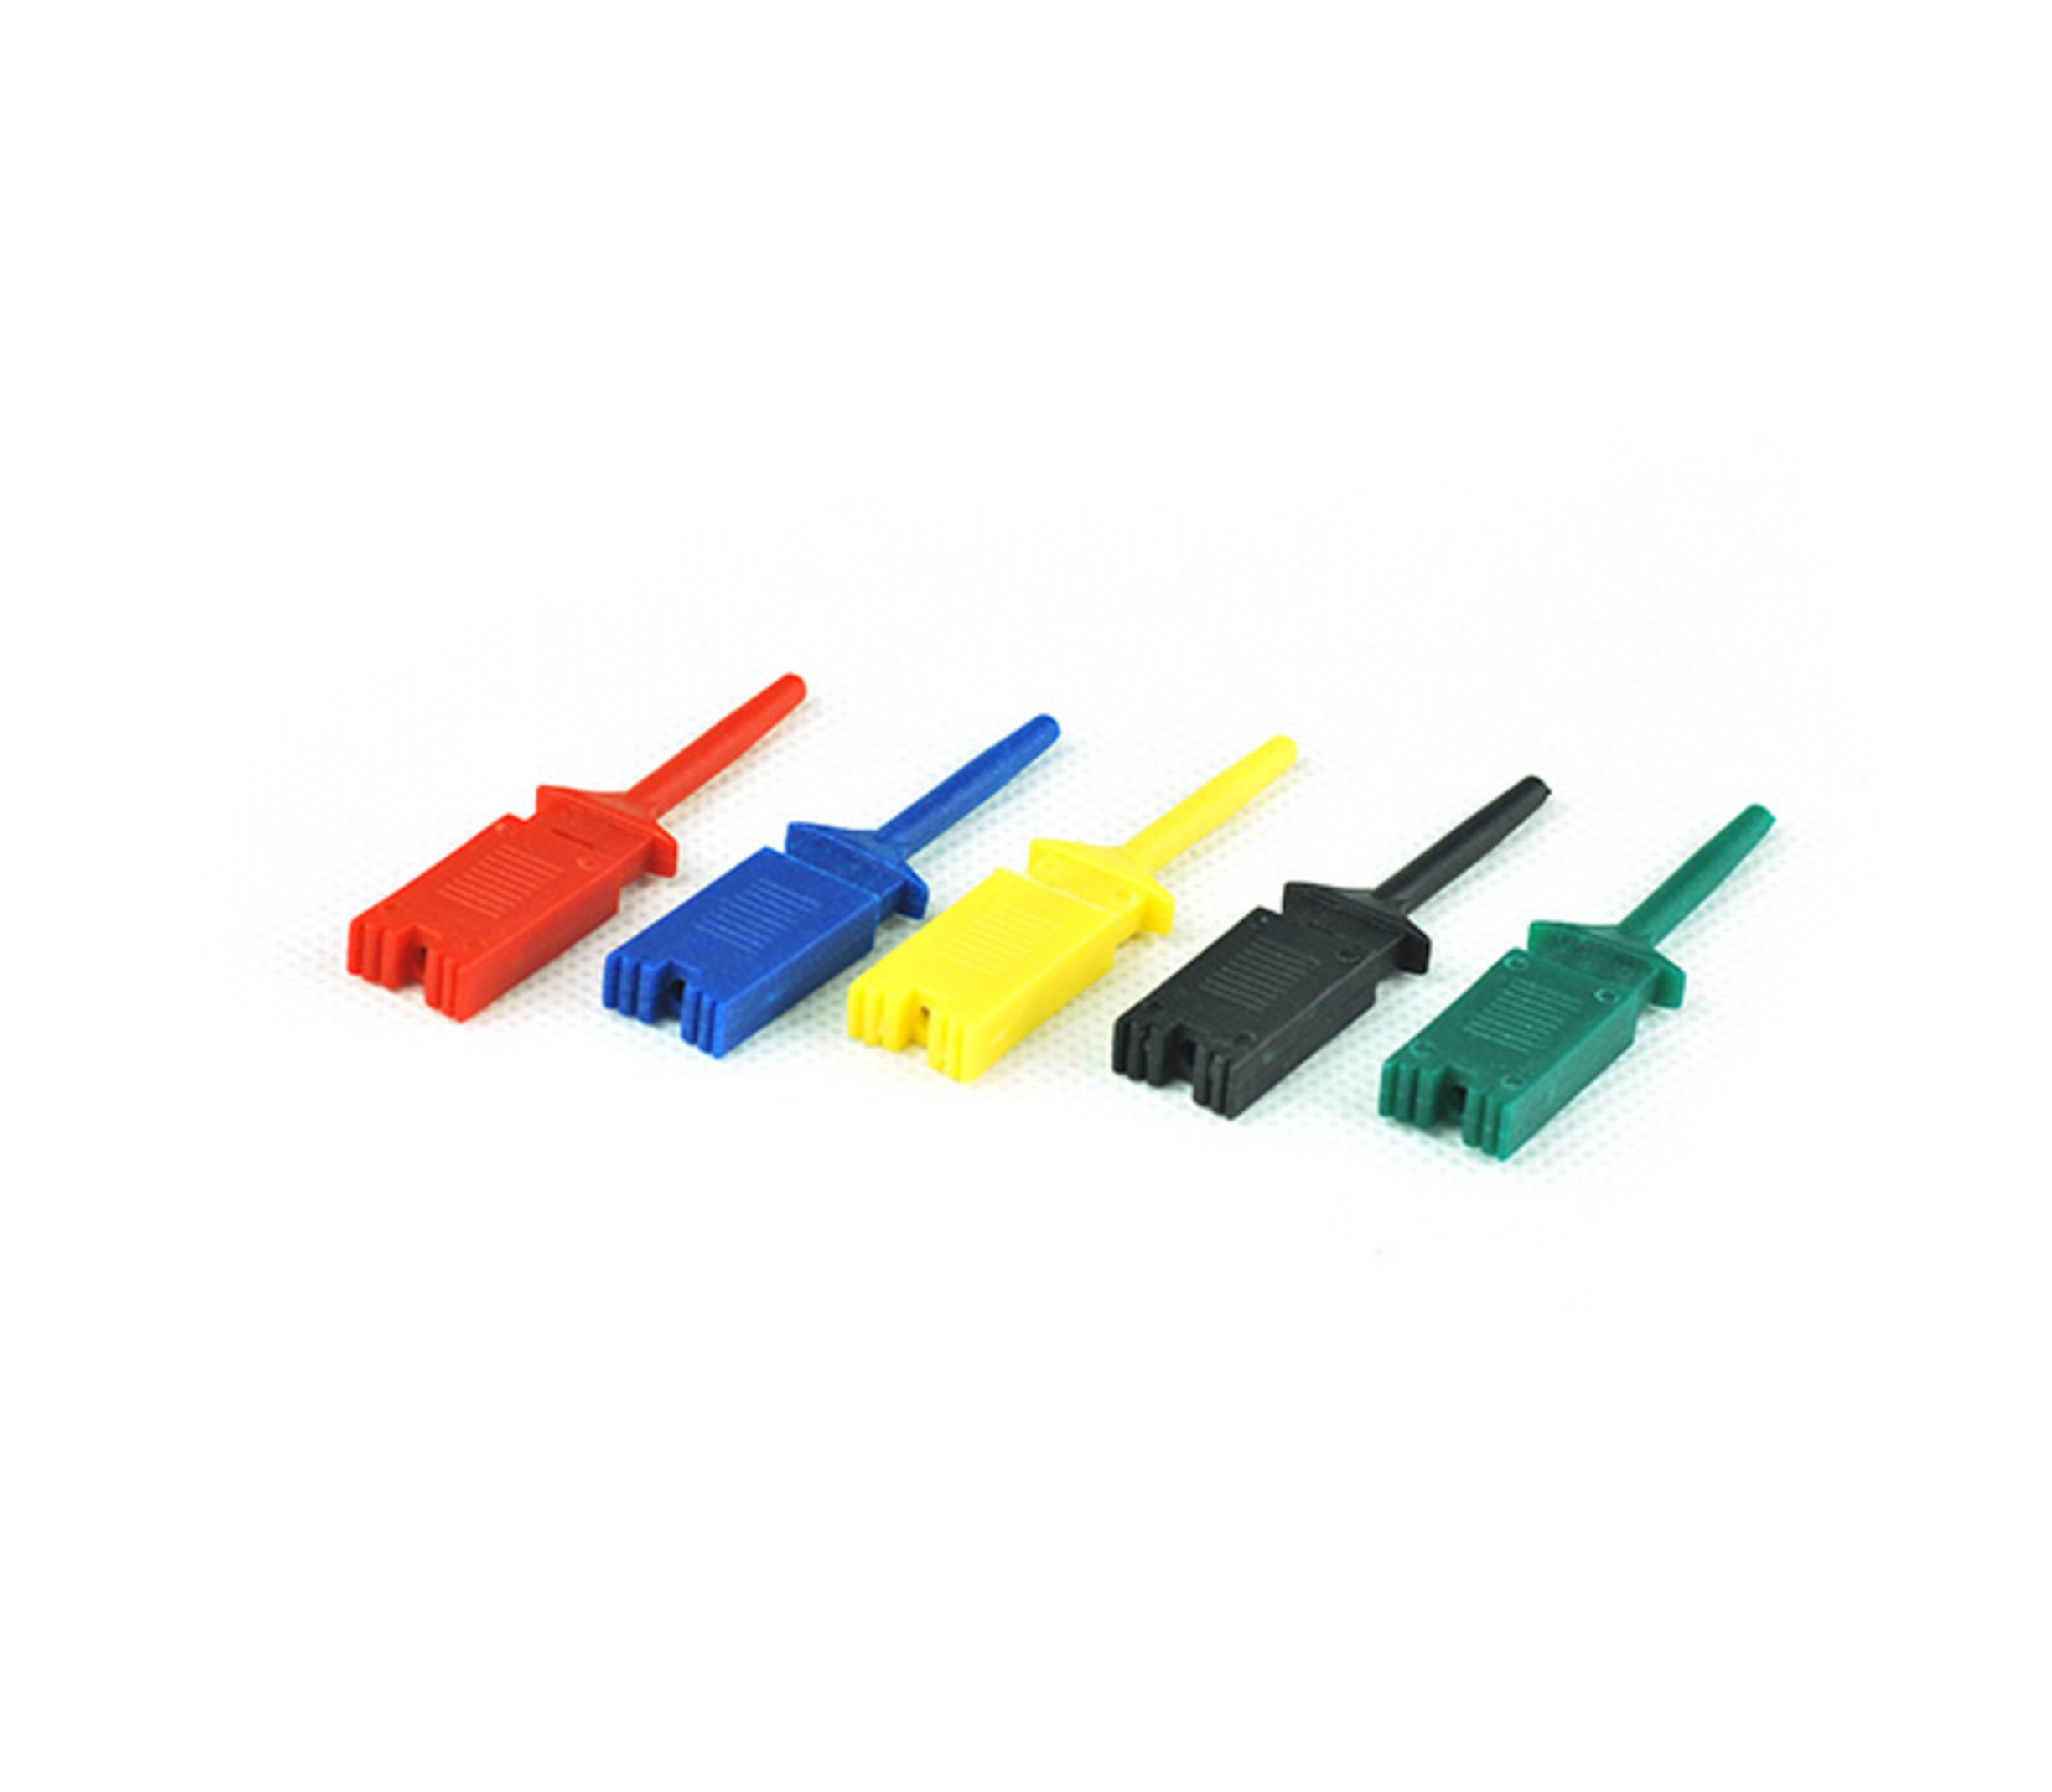 Logic analyzer clip 5 kleuren